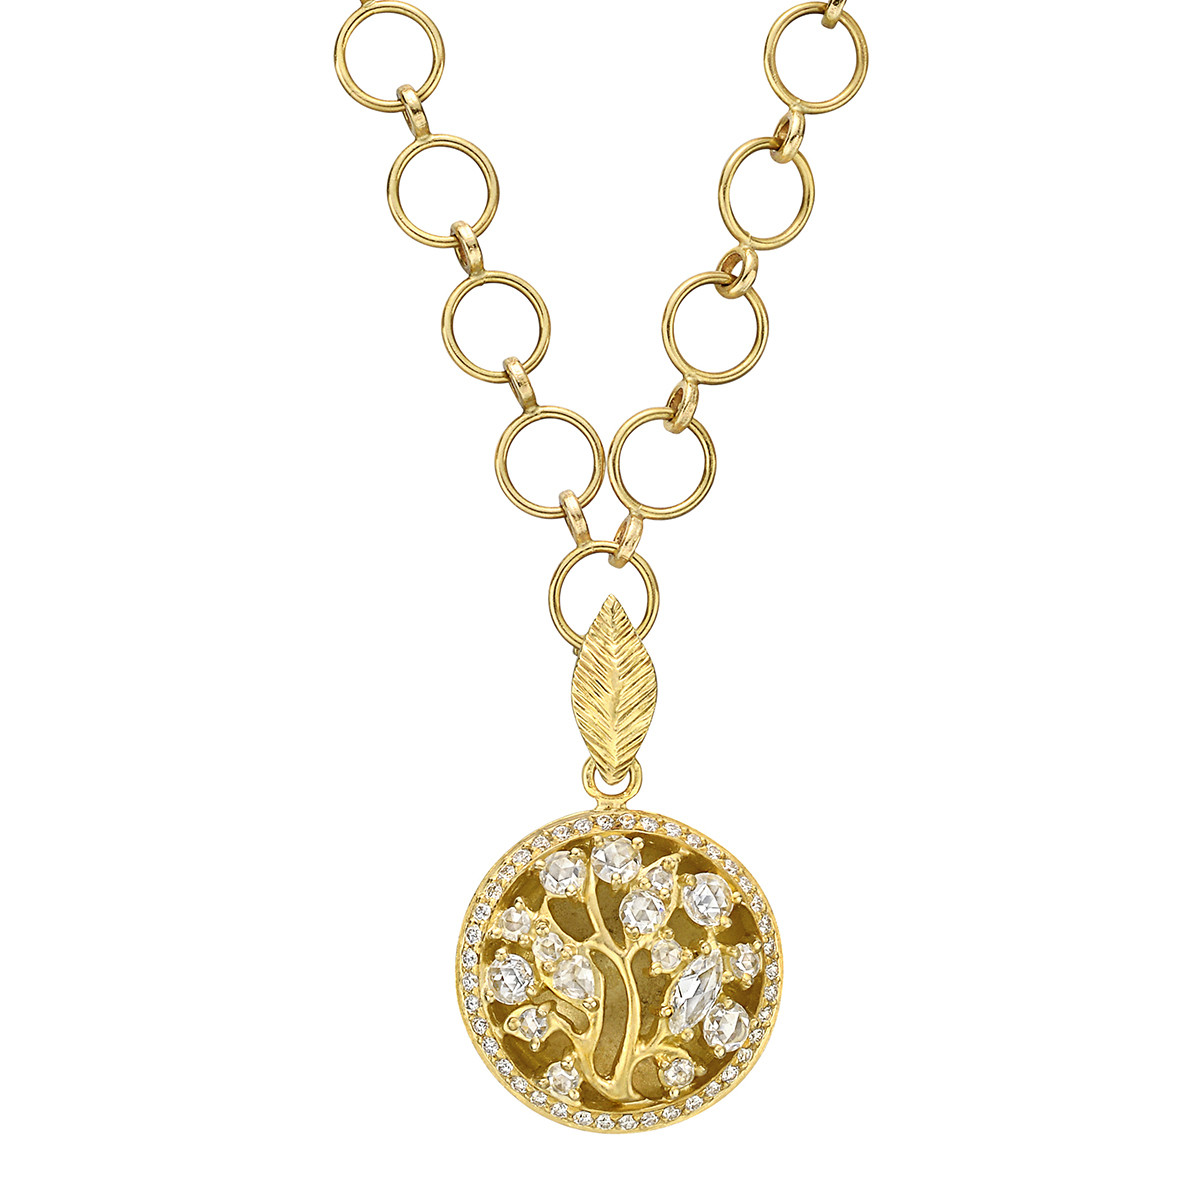 18k Yellow Gold & Diamond Circular Tree Pendant